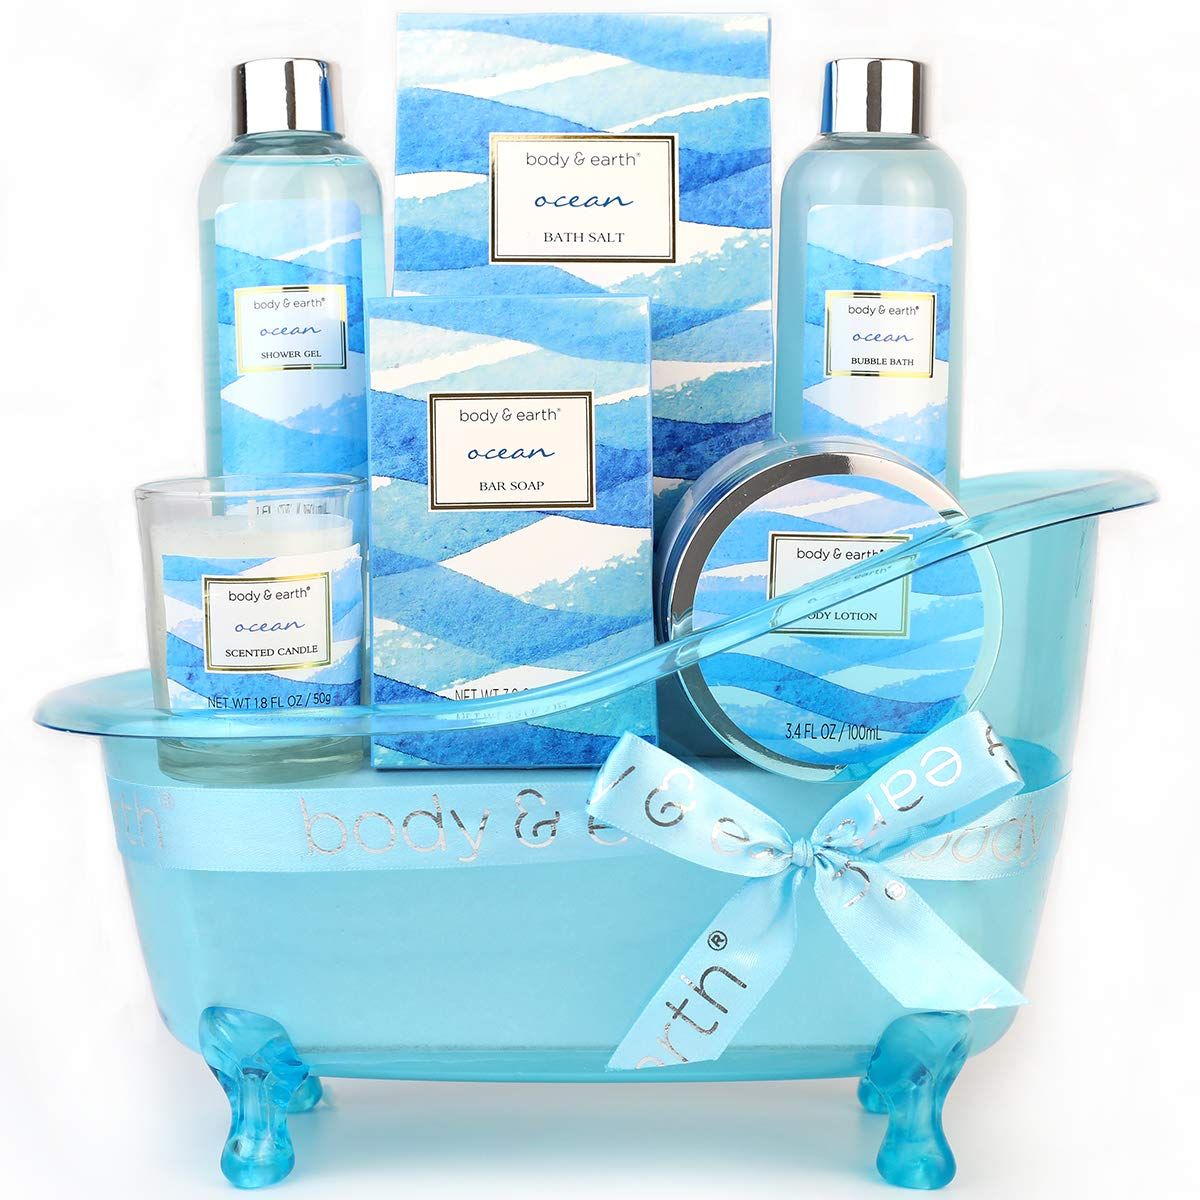 Bath Gift Set for Women,Body & Earth Home Spa Kit Scented with Ocean,Bath  and Body Gift Basket Set,Spa Gifts for Women,5 Pcs Bath Set,Best Gift Ideal